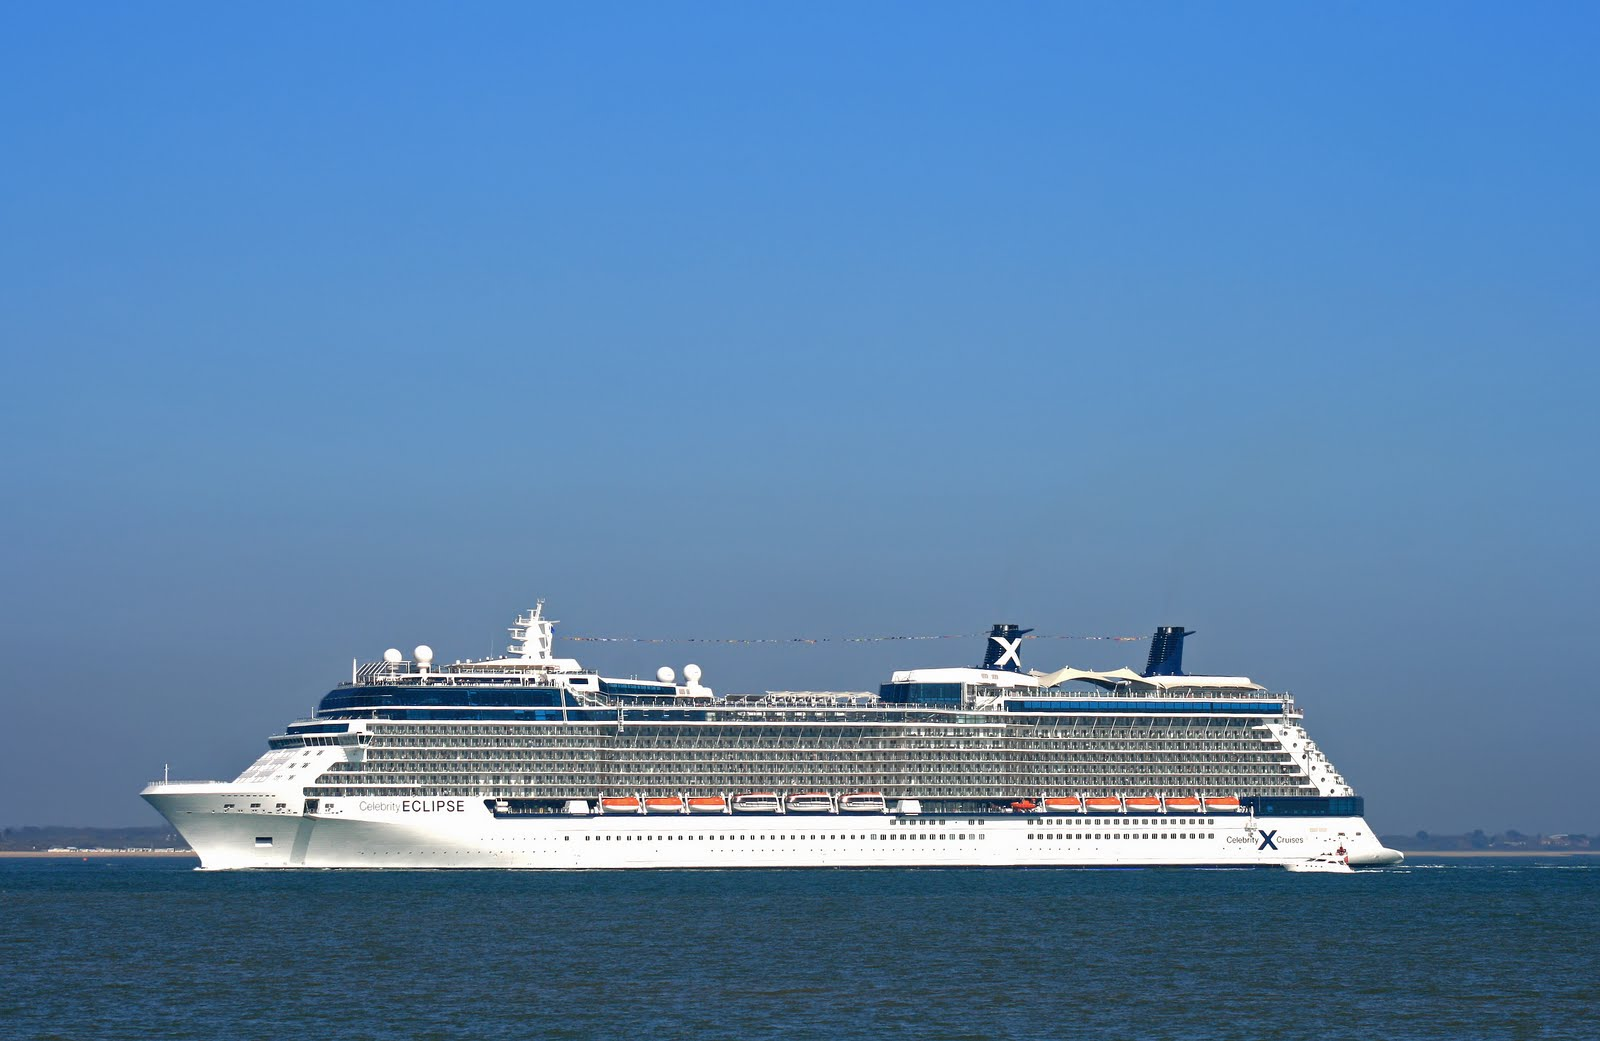 celebrity eclipse   characteristics and pictures of a new